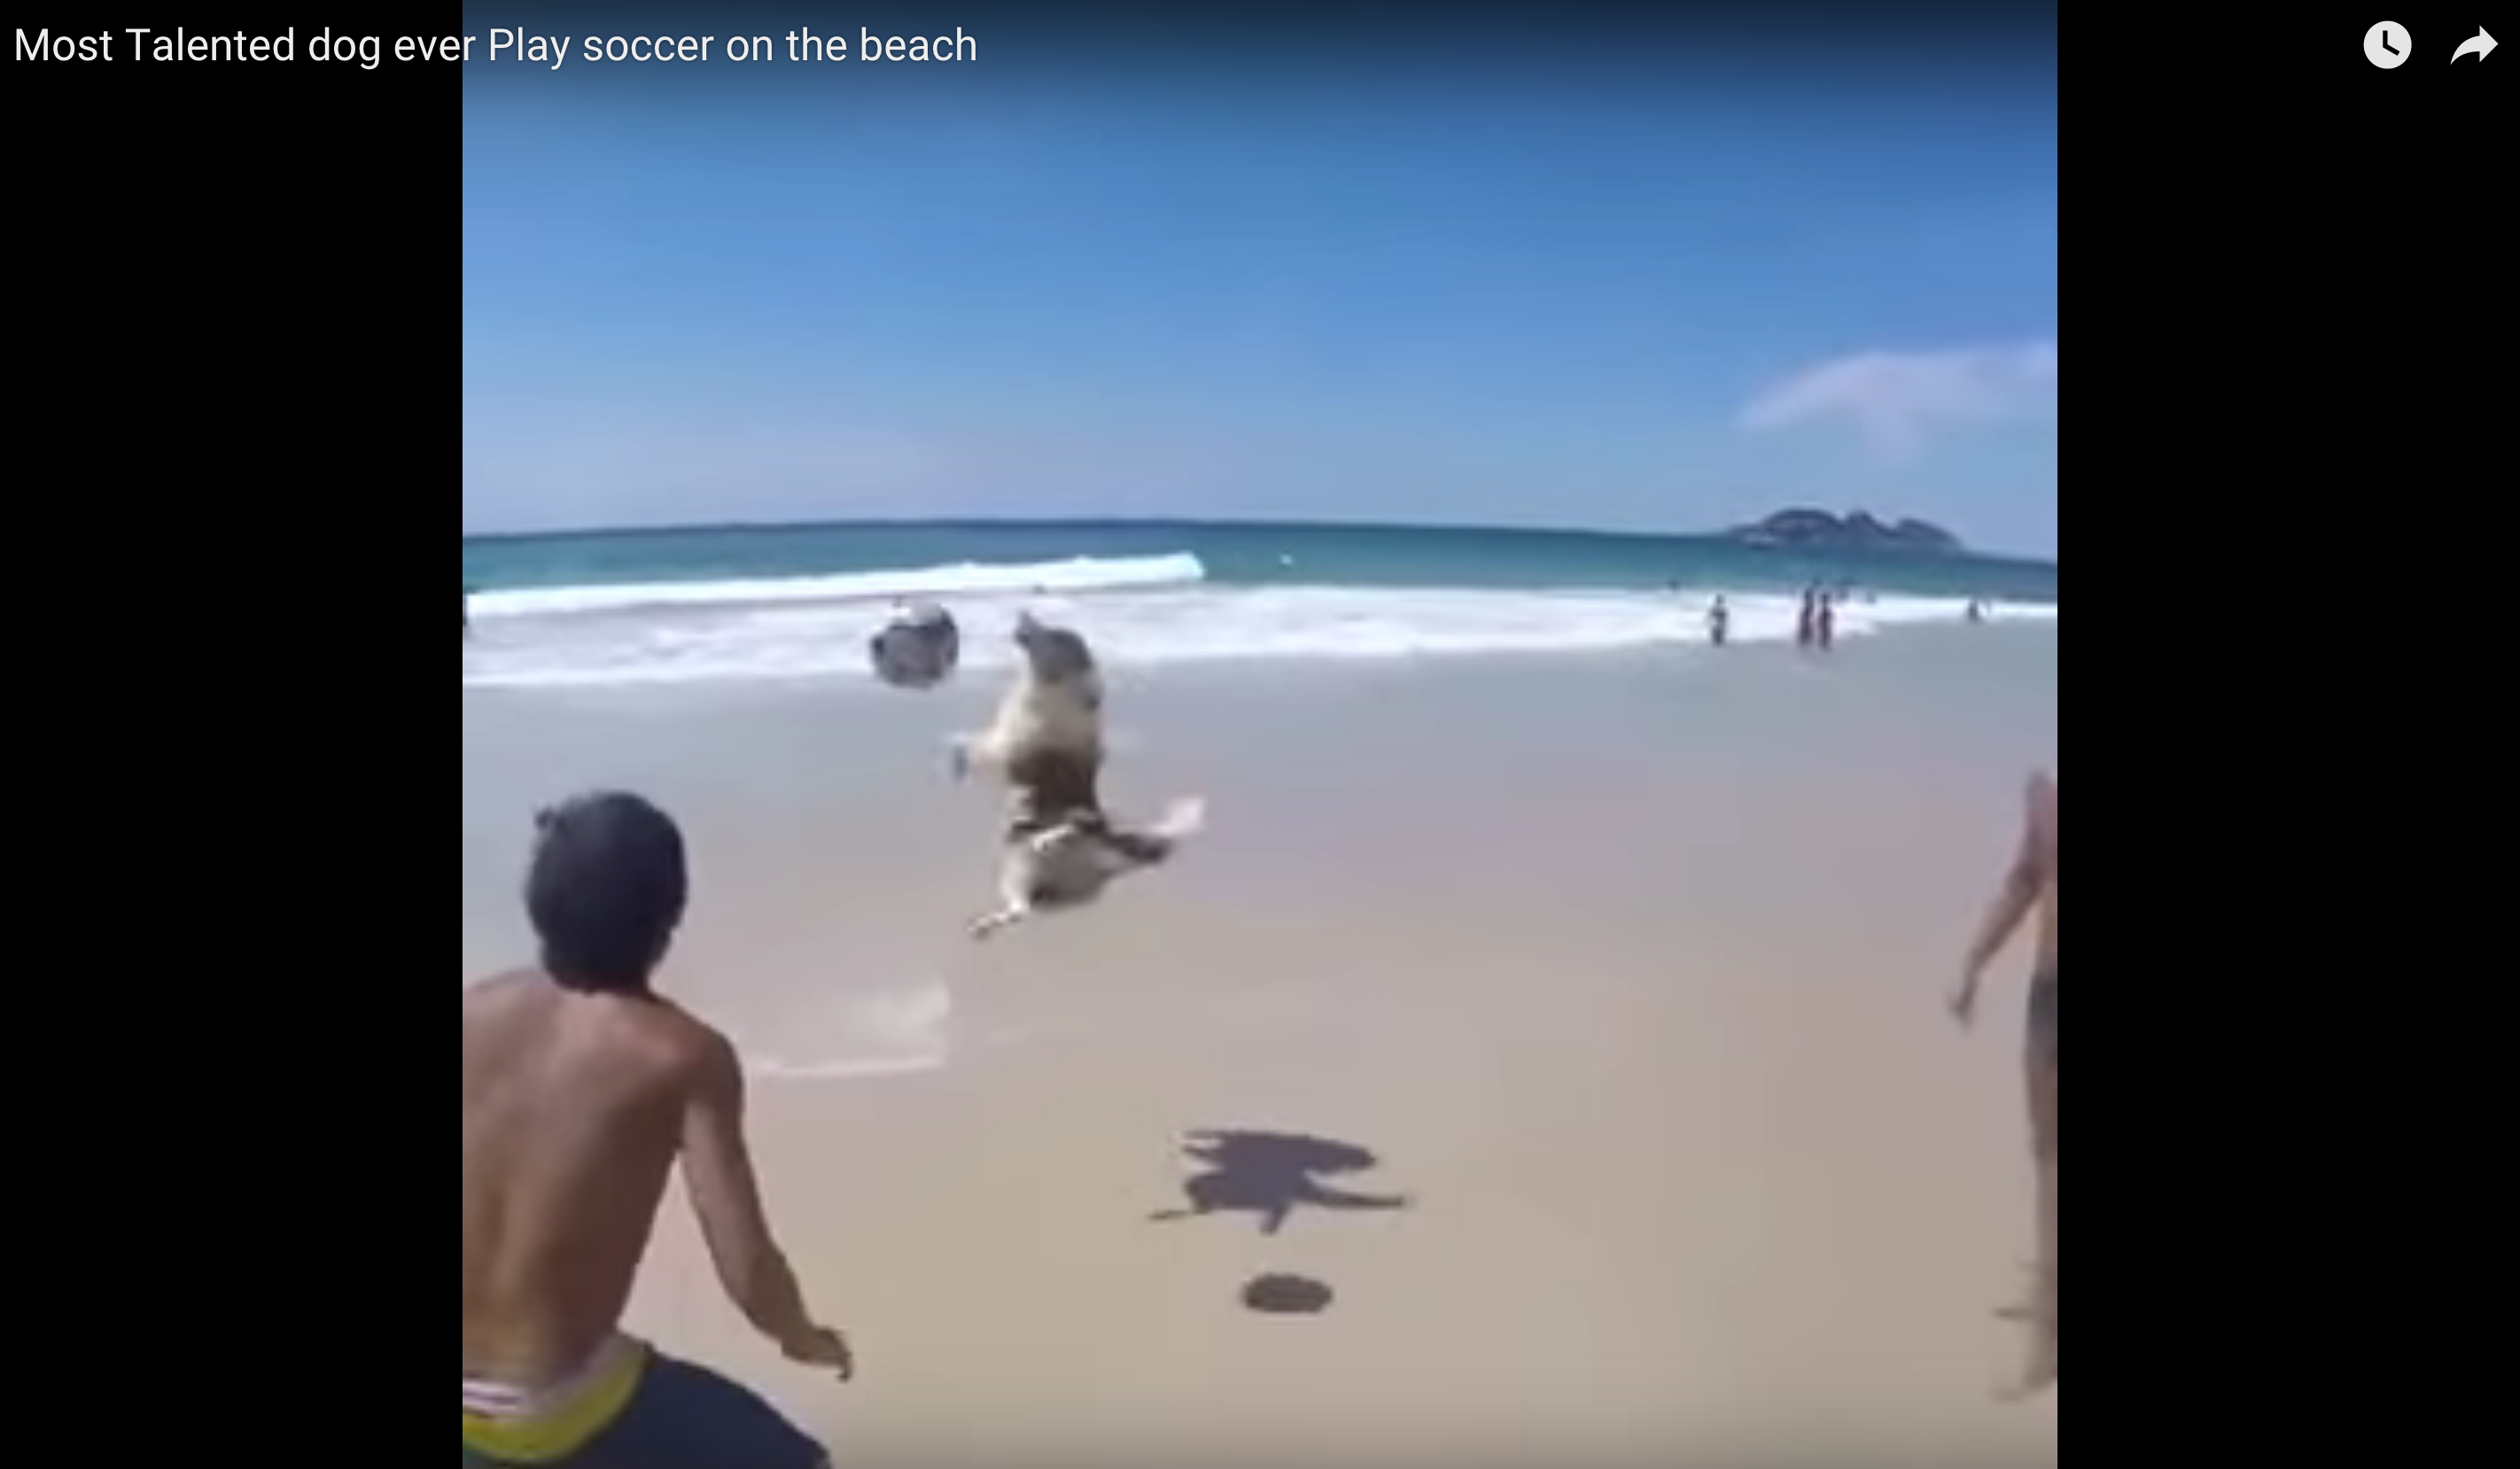 Dog Shows Off Soccer Skills At Beach